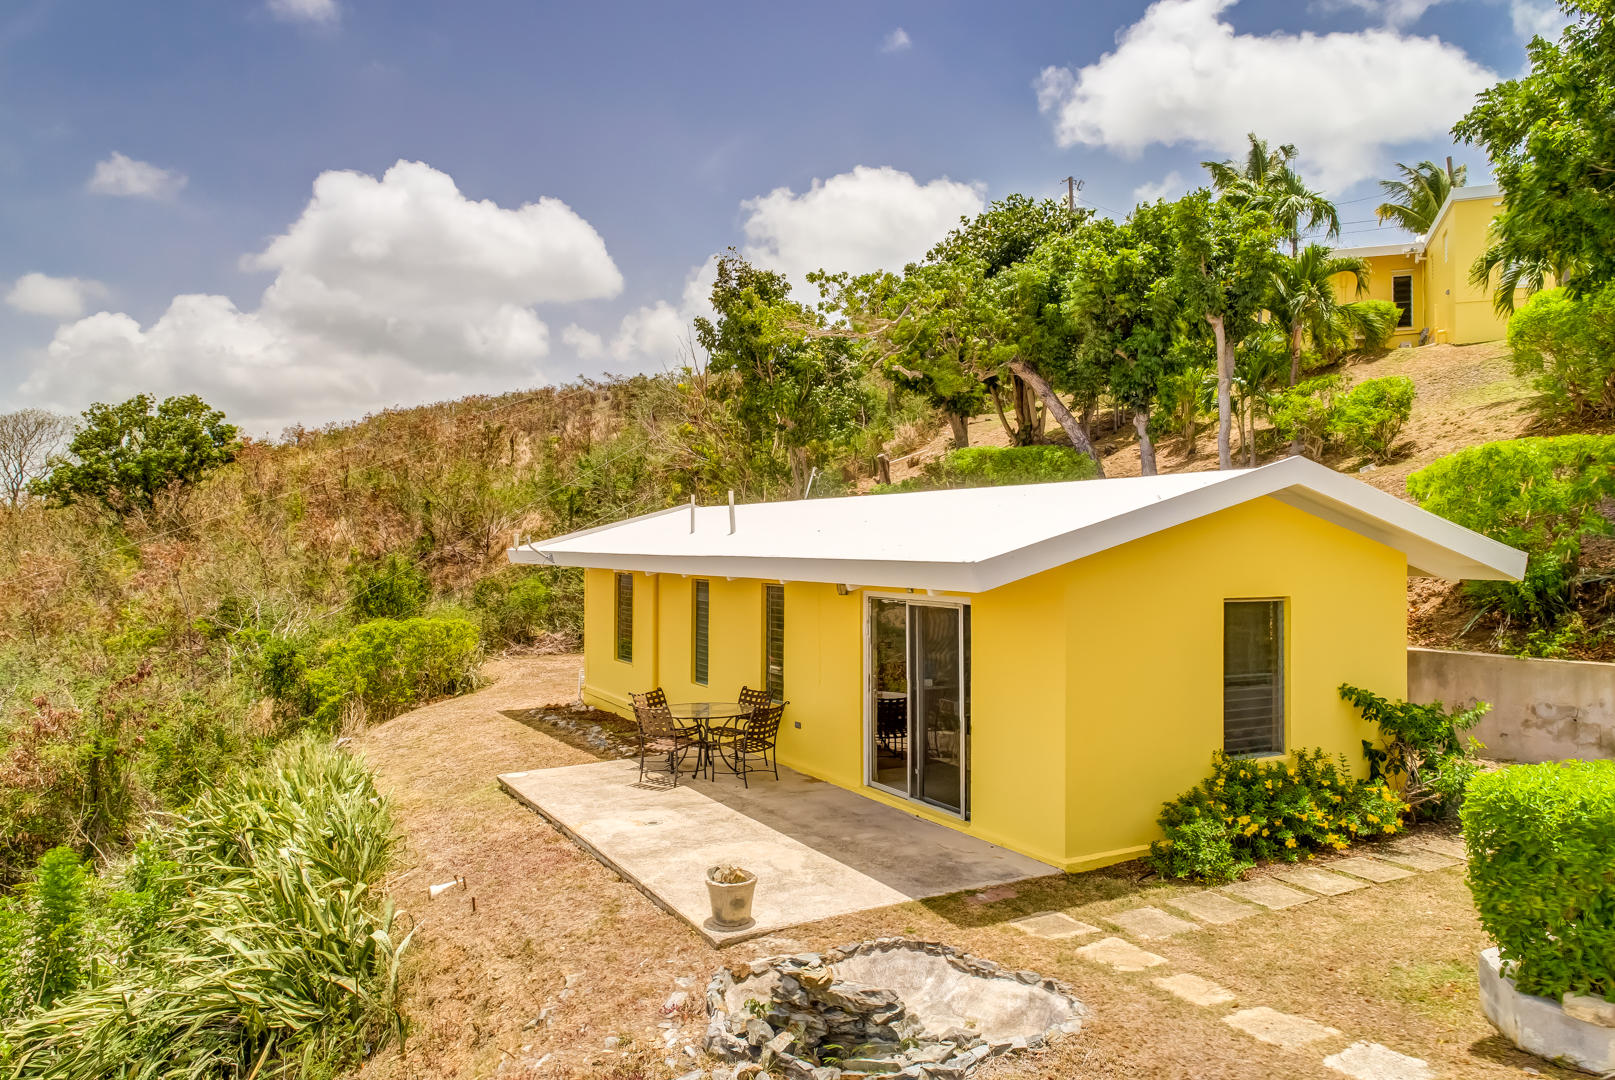 Single Family Home for Rent at 4A Union & Mt. Washington EA 4A Union & Mt. Washington EA St Croix, Virgin Islands 00820 United States Virgin Islands